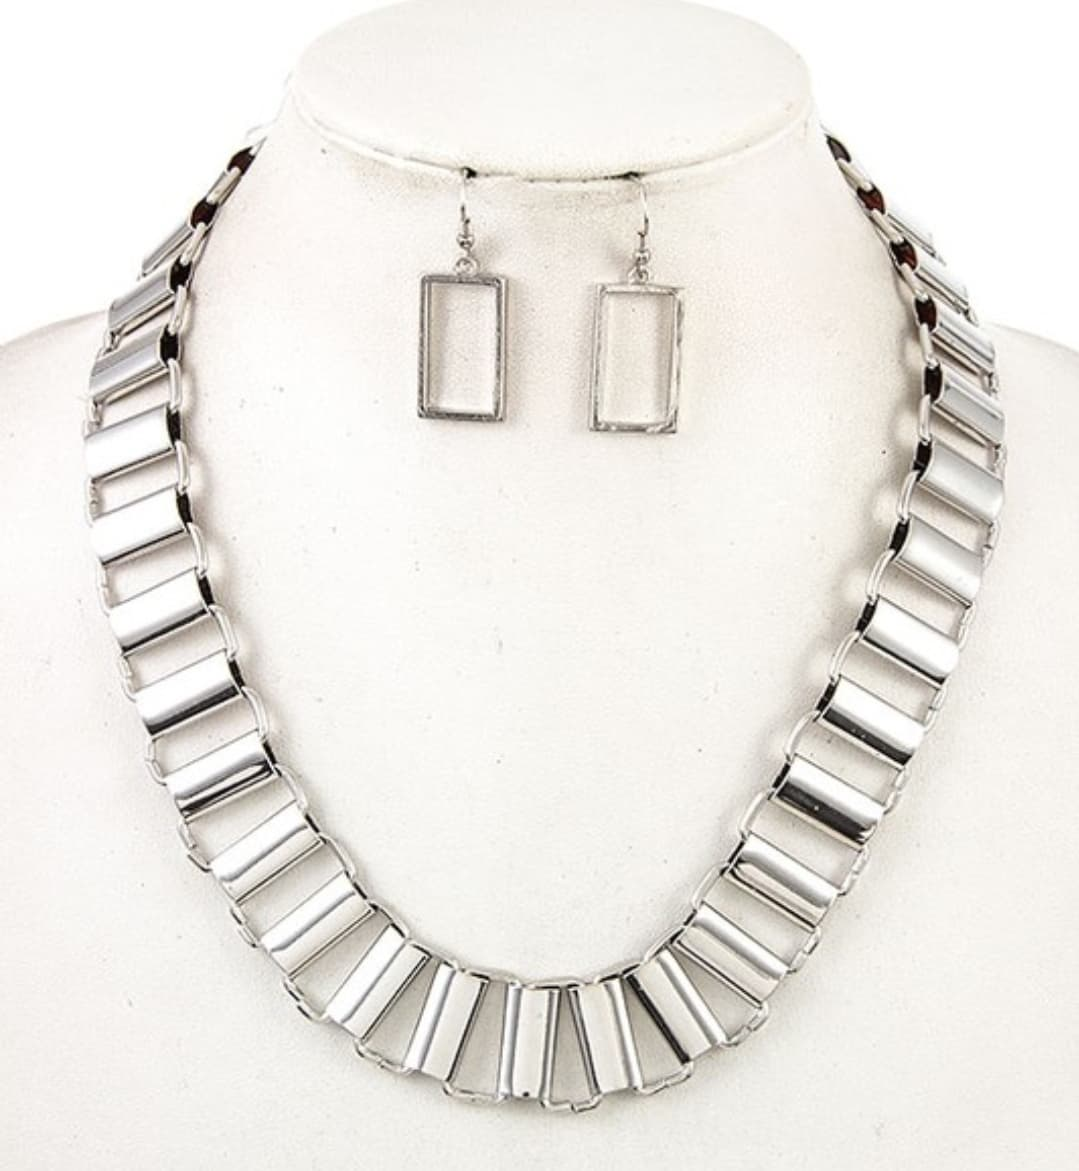 Silver Bars Necklace and Earrings - Altered Apparel Boutique